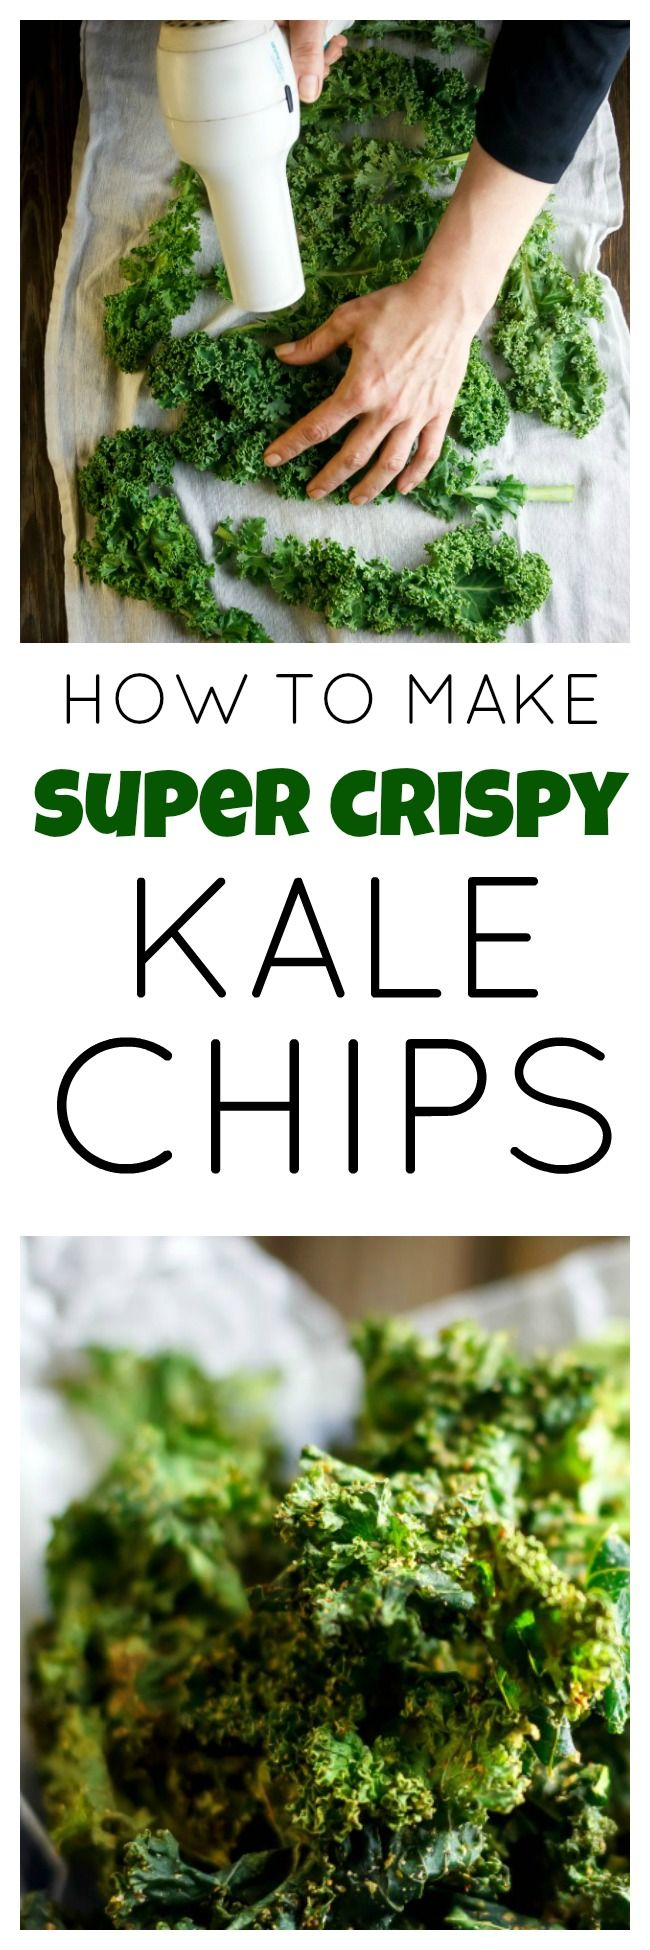 Cool, easy tricks to make your kale chips super crispy!